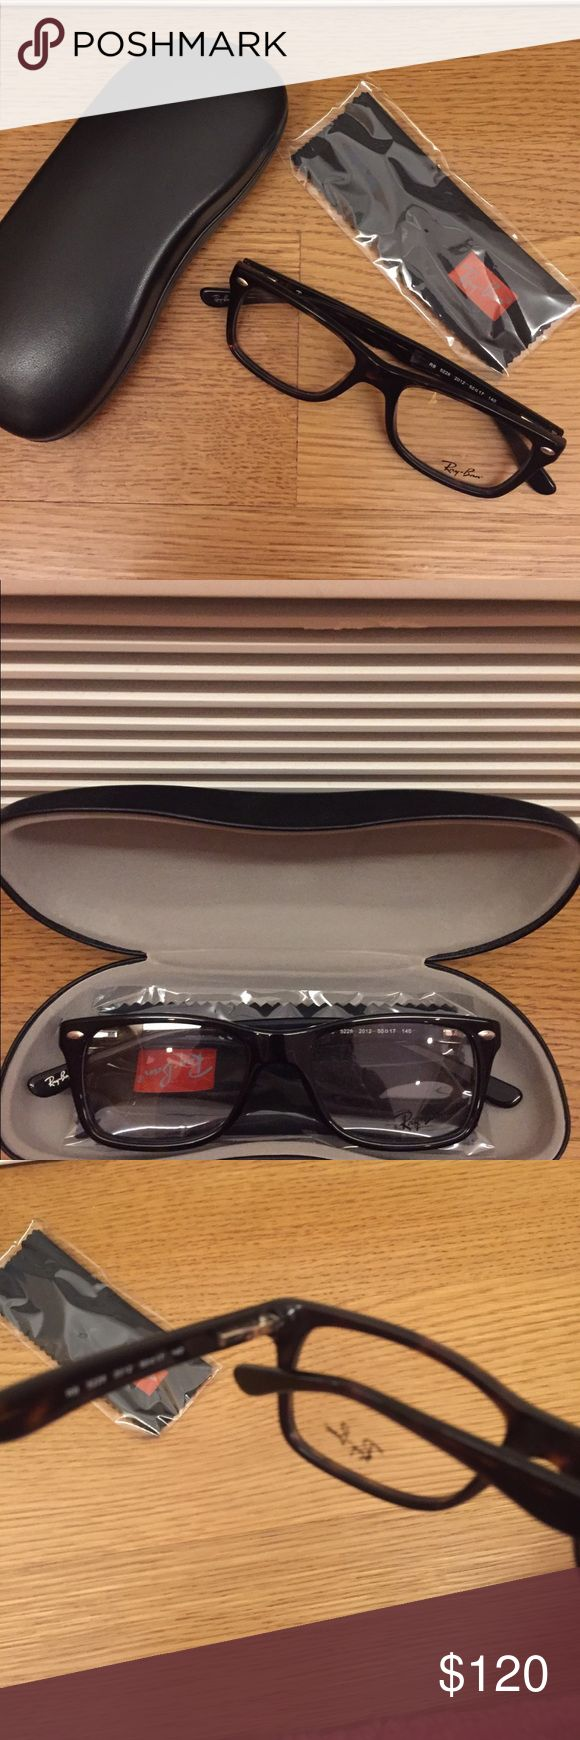 ray ban sticker for prescription sunglasses  never worn ray ban reading glasses nwt